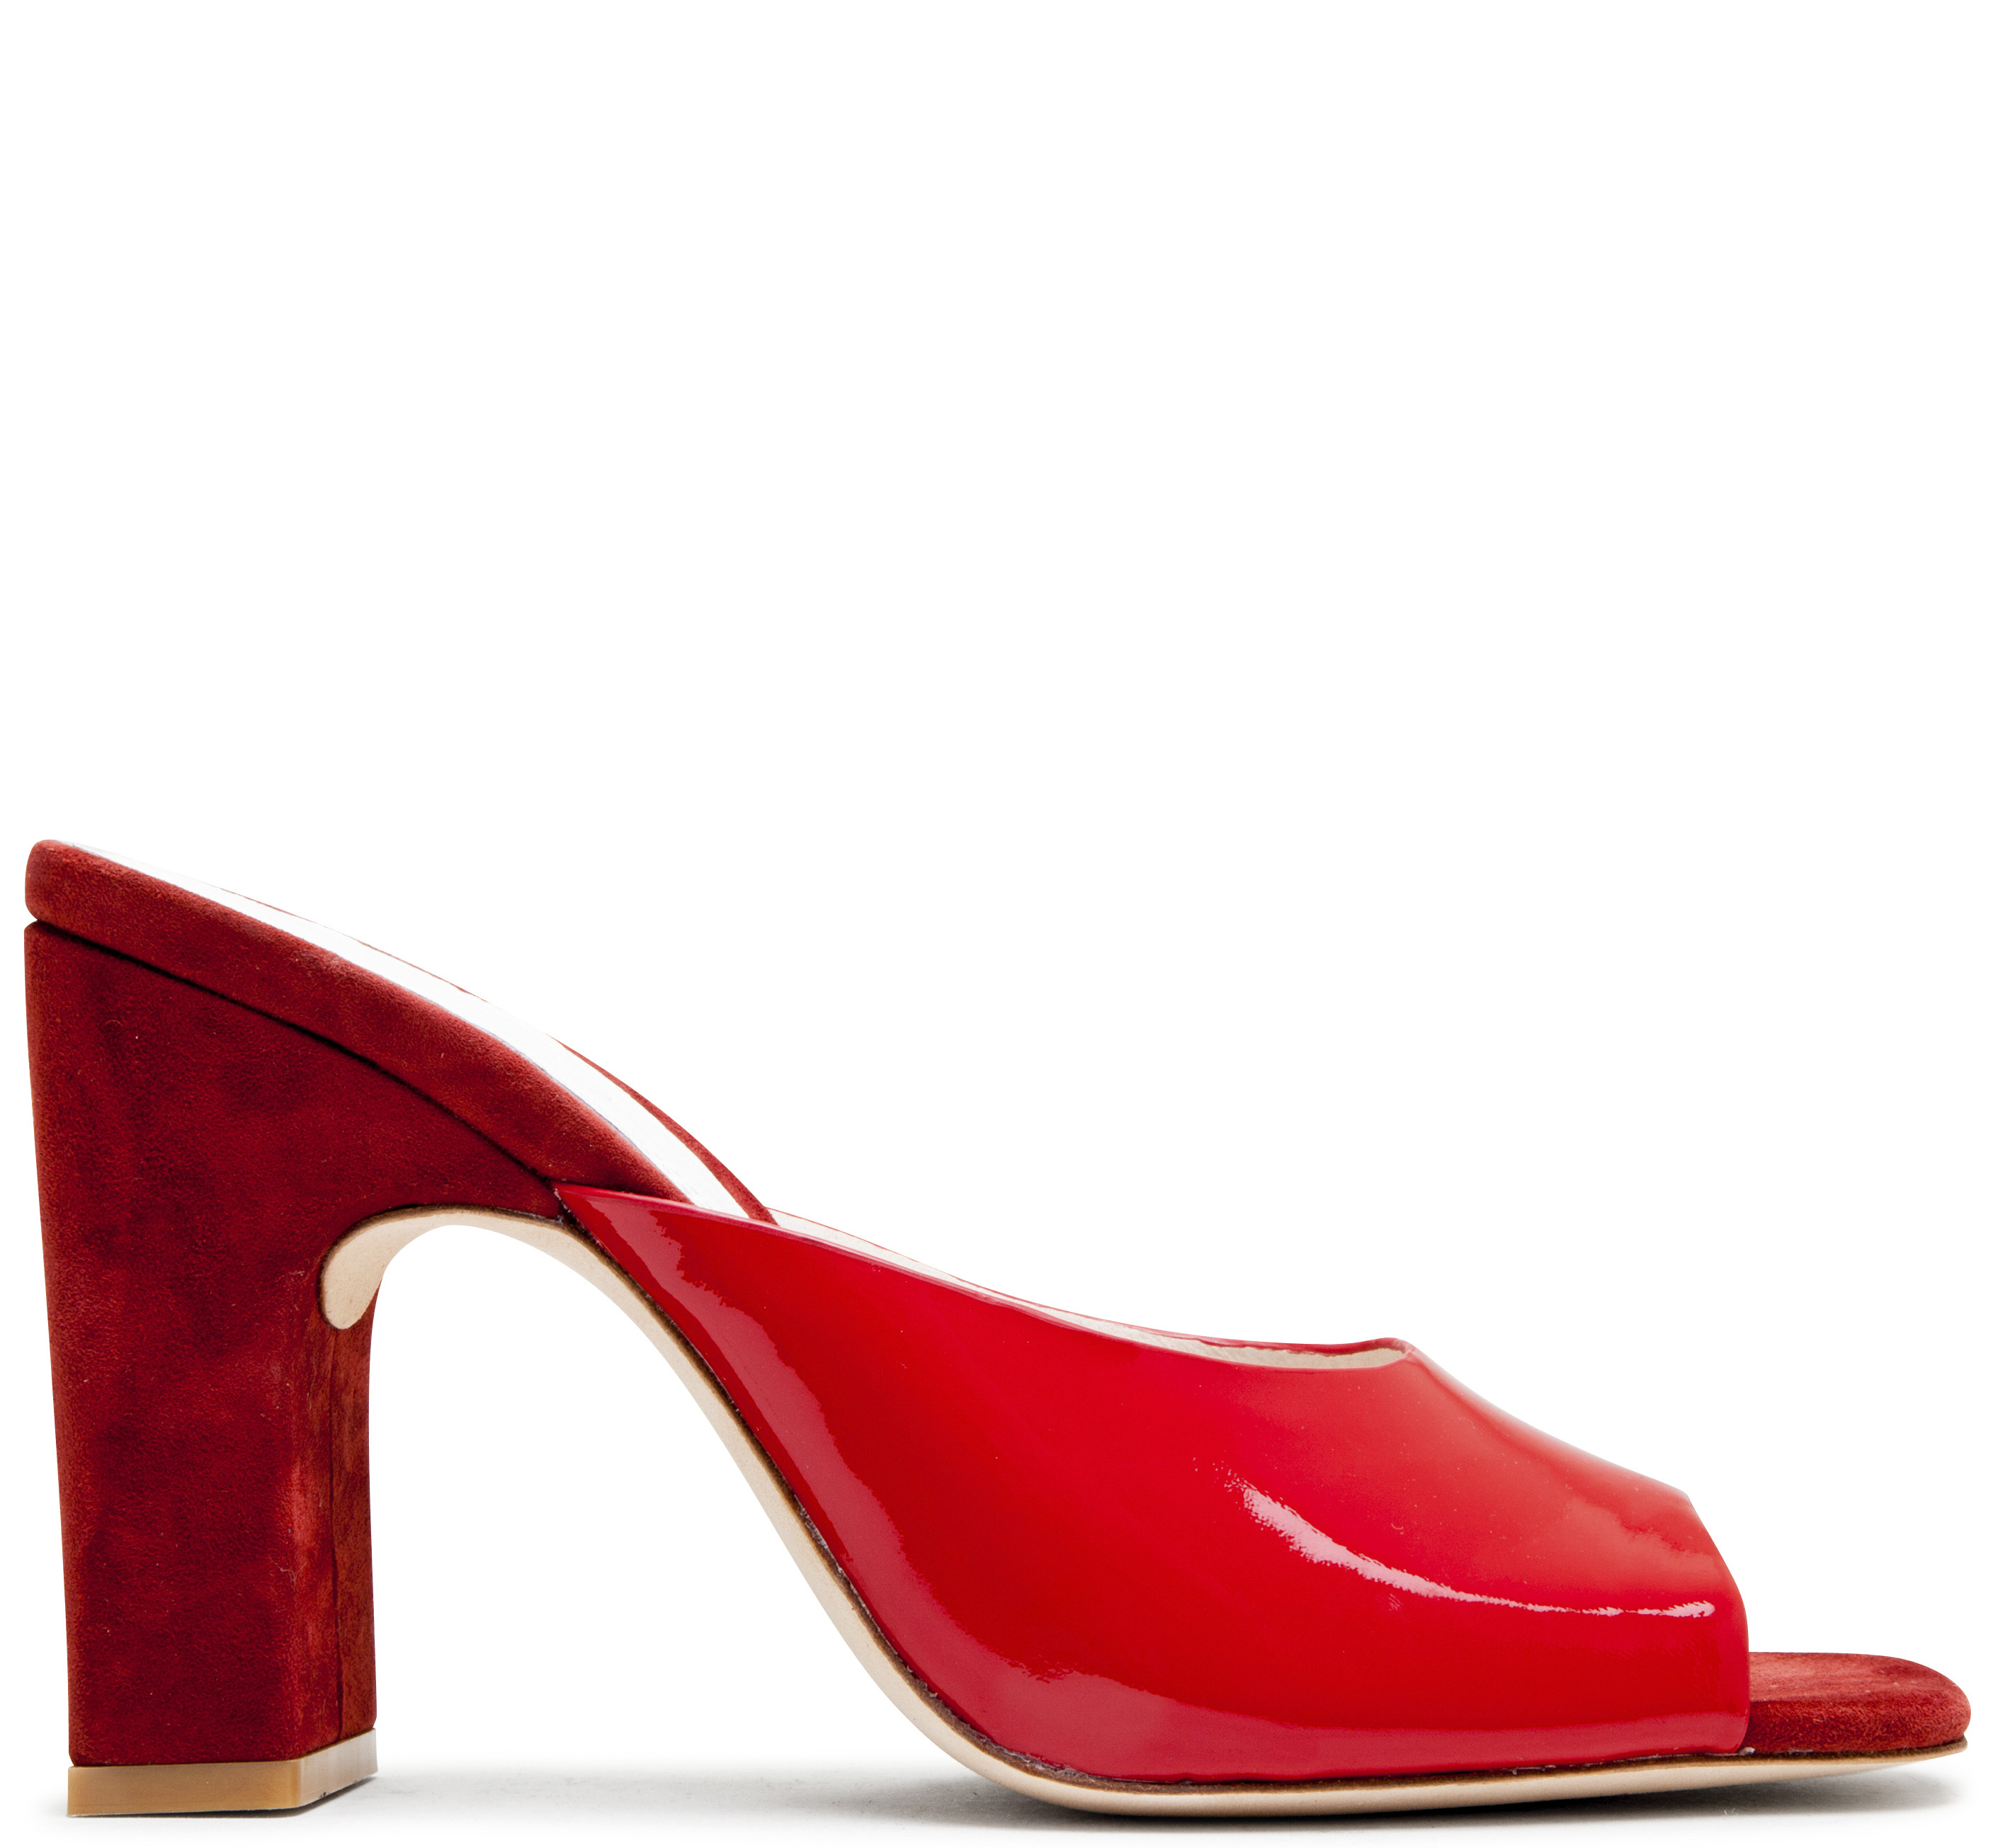 heaven_patent-lth-red-2